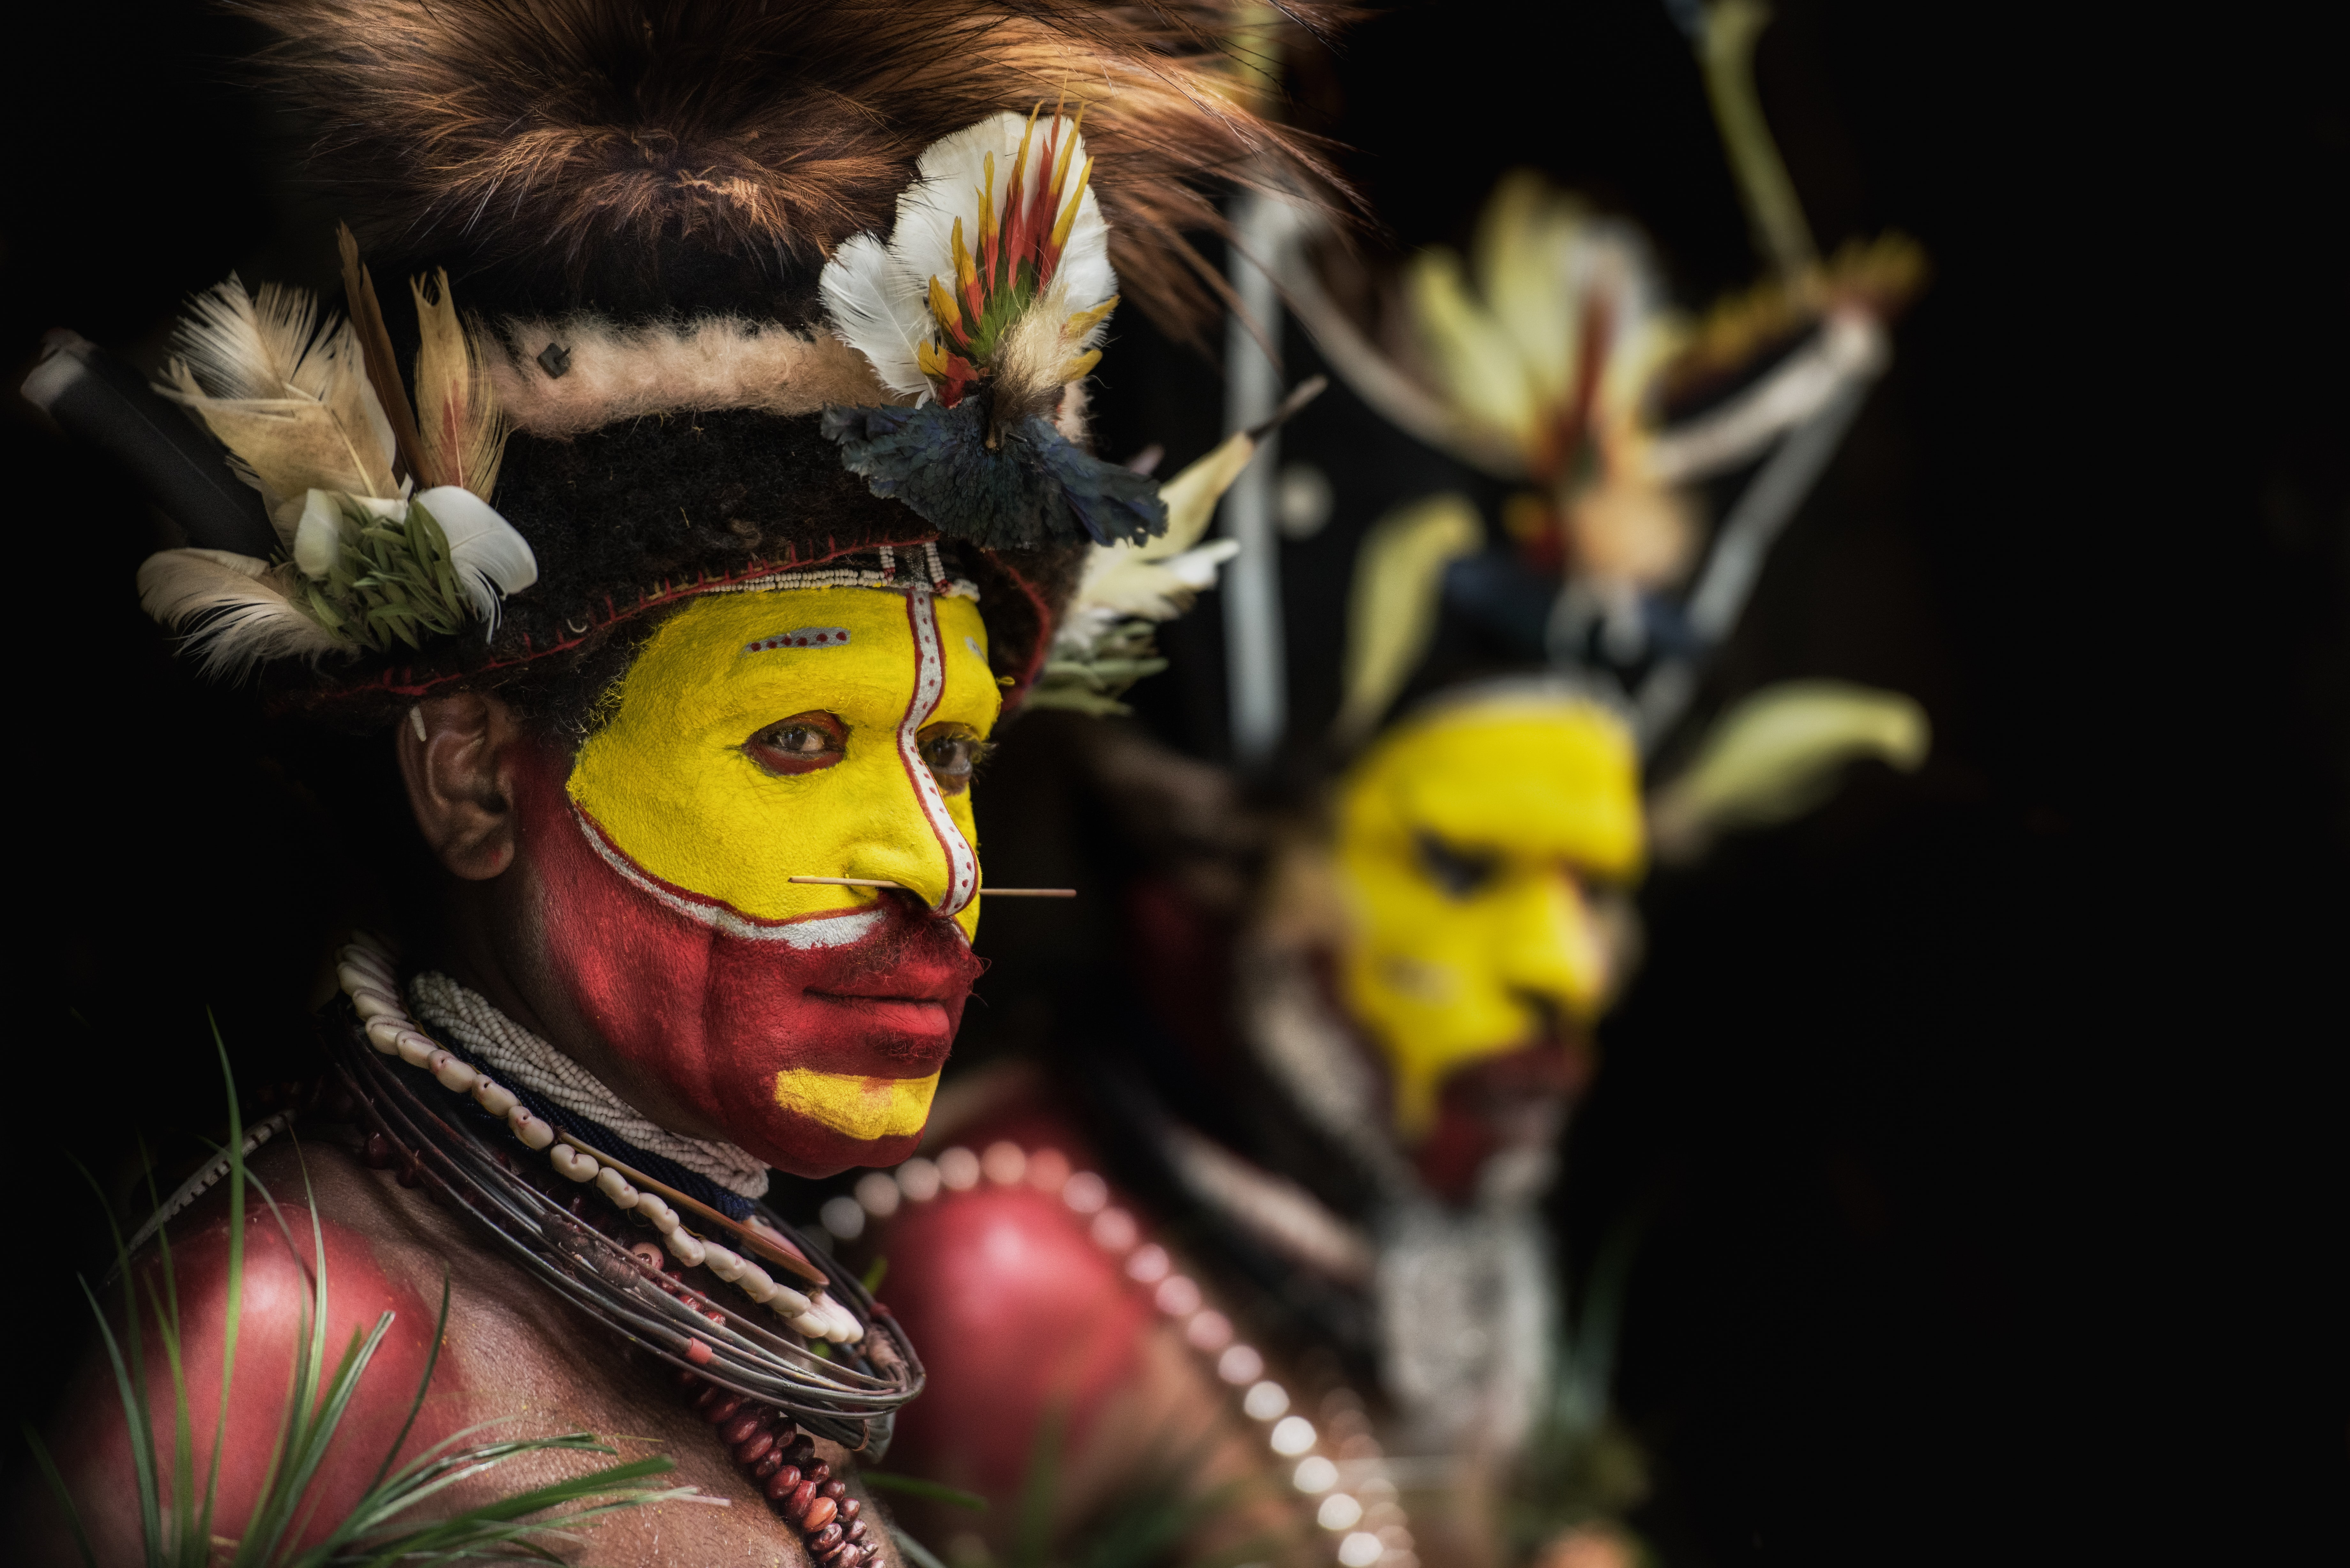 man with yellow and red face paints